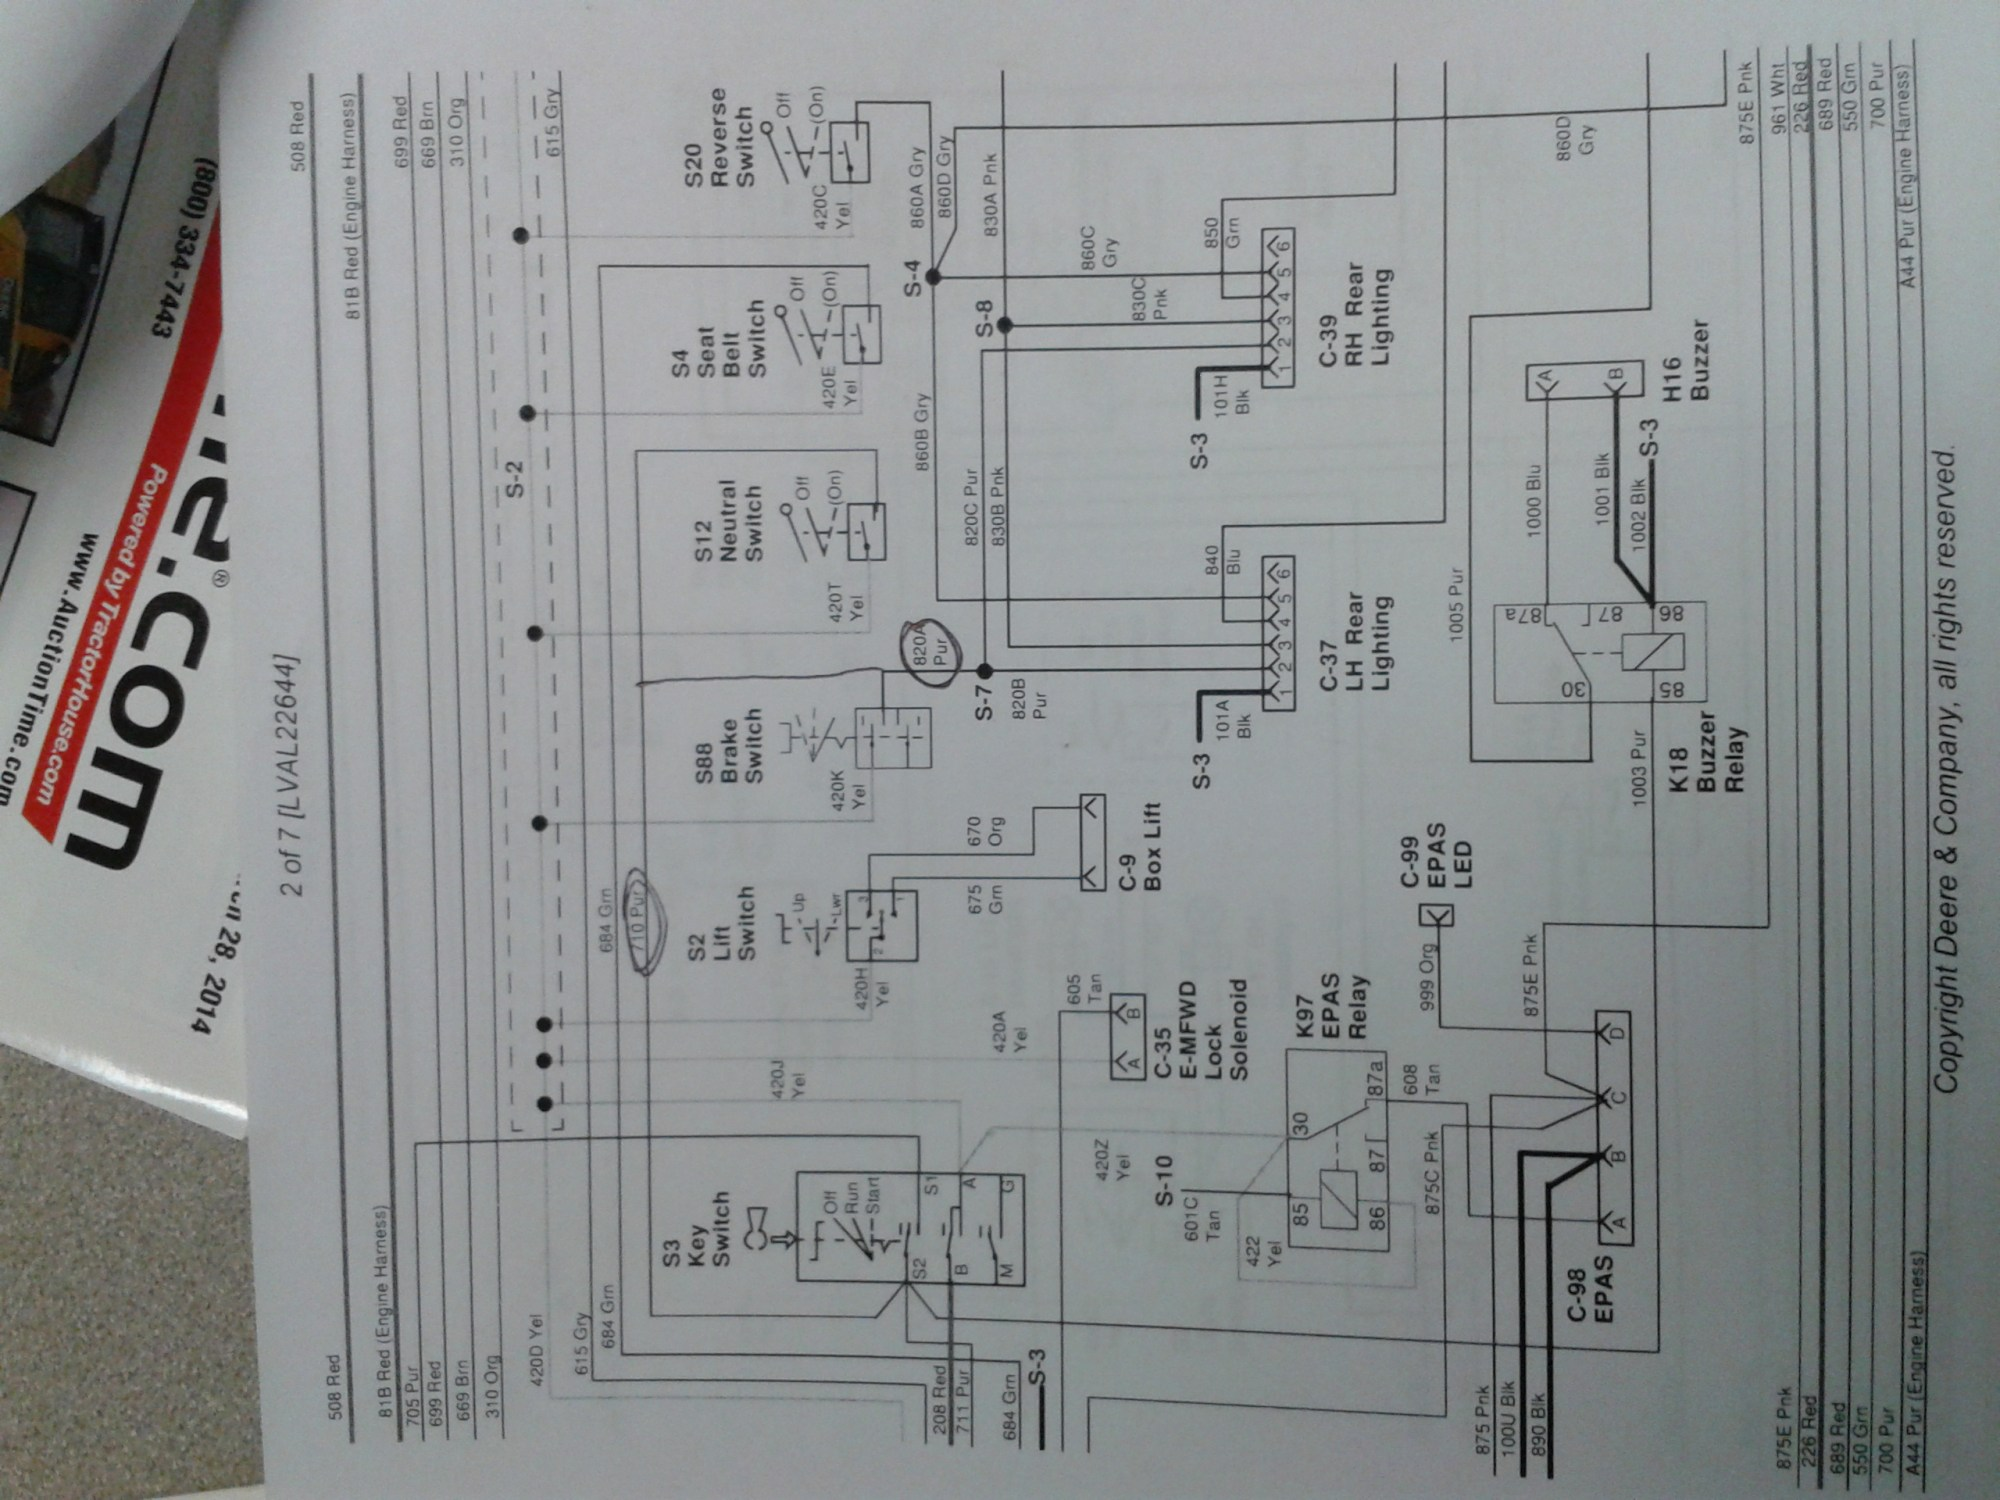 hight resolution of wiring diagram for 2005 john deere gator hxp wiring diagram toolbox deere gator wiring harness diagram john deere gator engine diagram